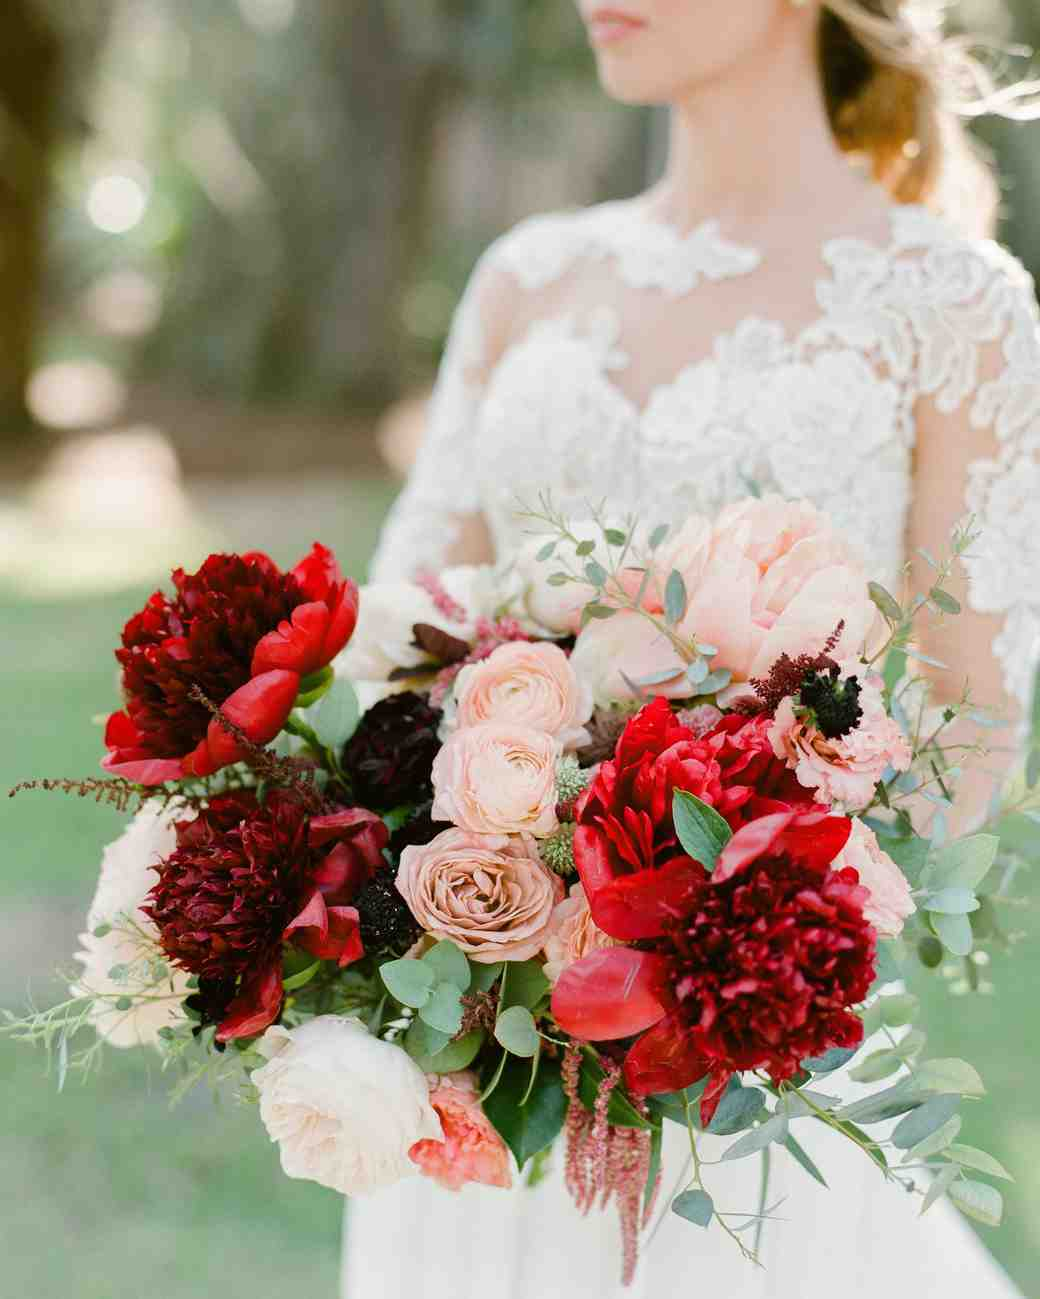 20 Wedding Flowers Ideas to Copy For Your BigDay recommendations